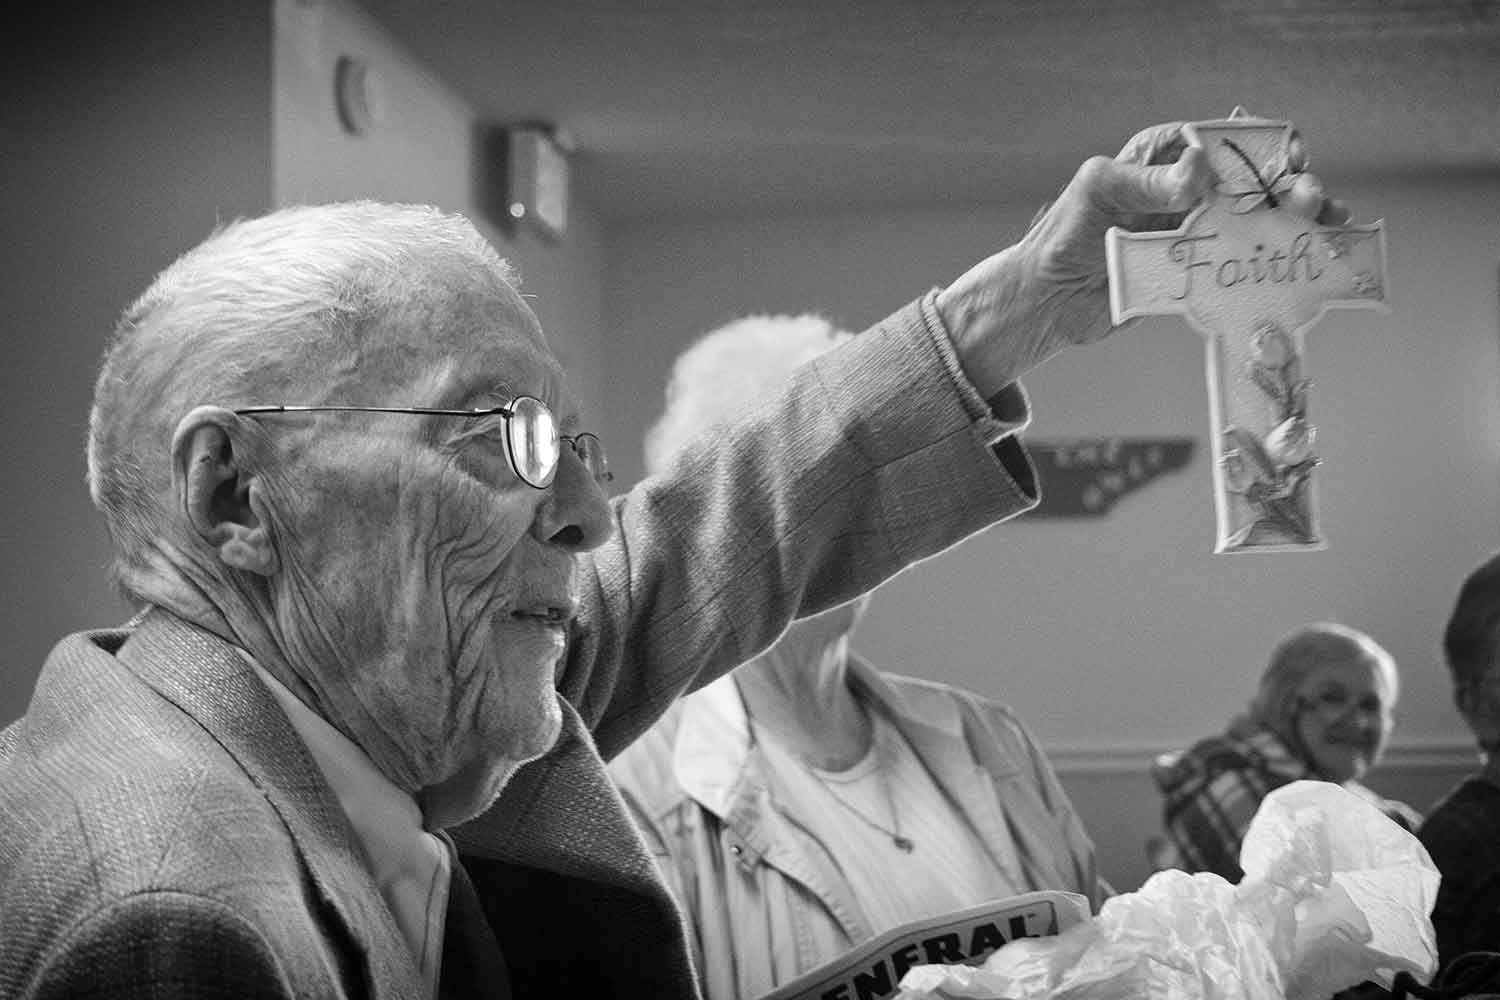 Ora Eads, 93, shows off his Bingo prize at the LaFollette Senior Citizen Center. photo by Anthony Cheatham - 2007